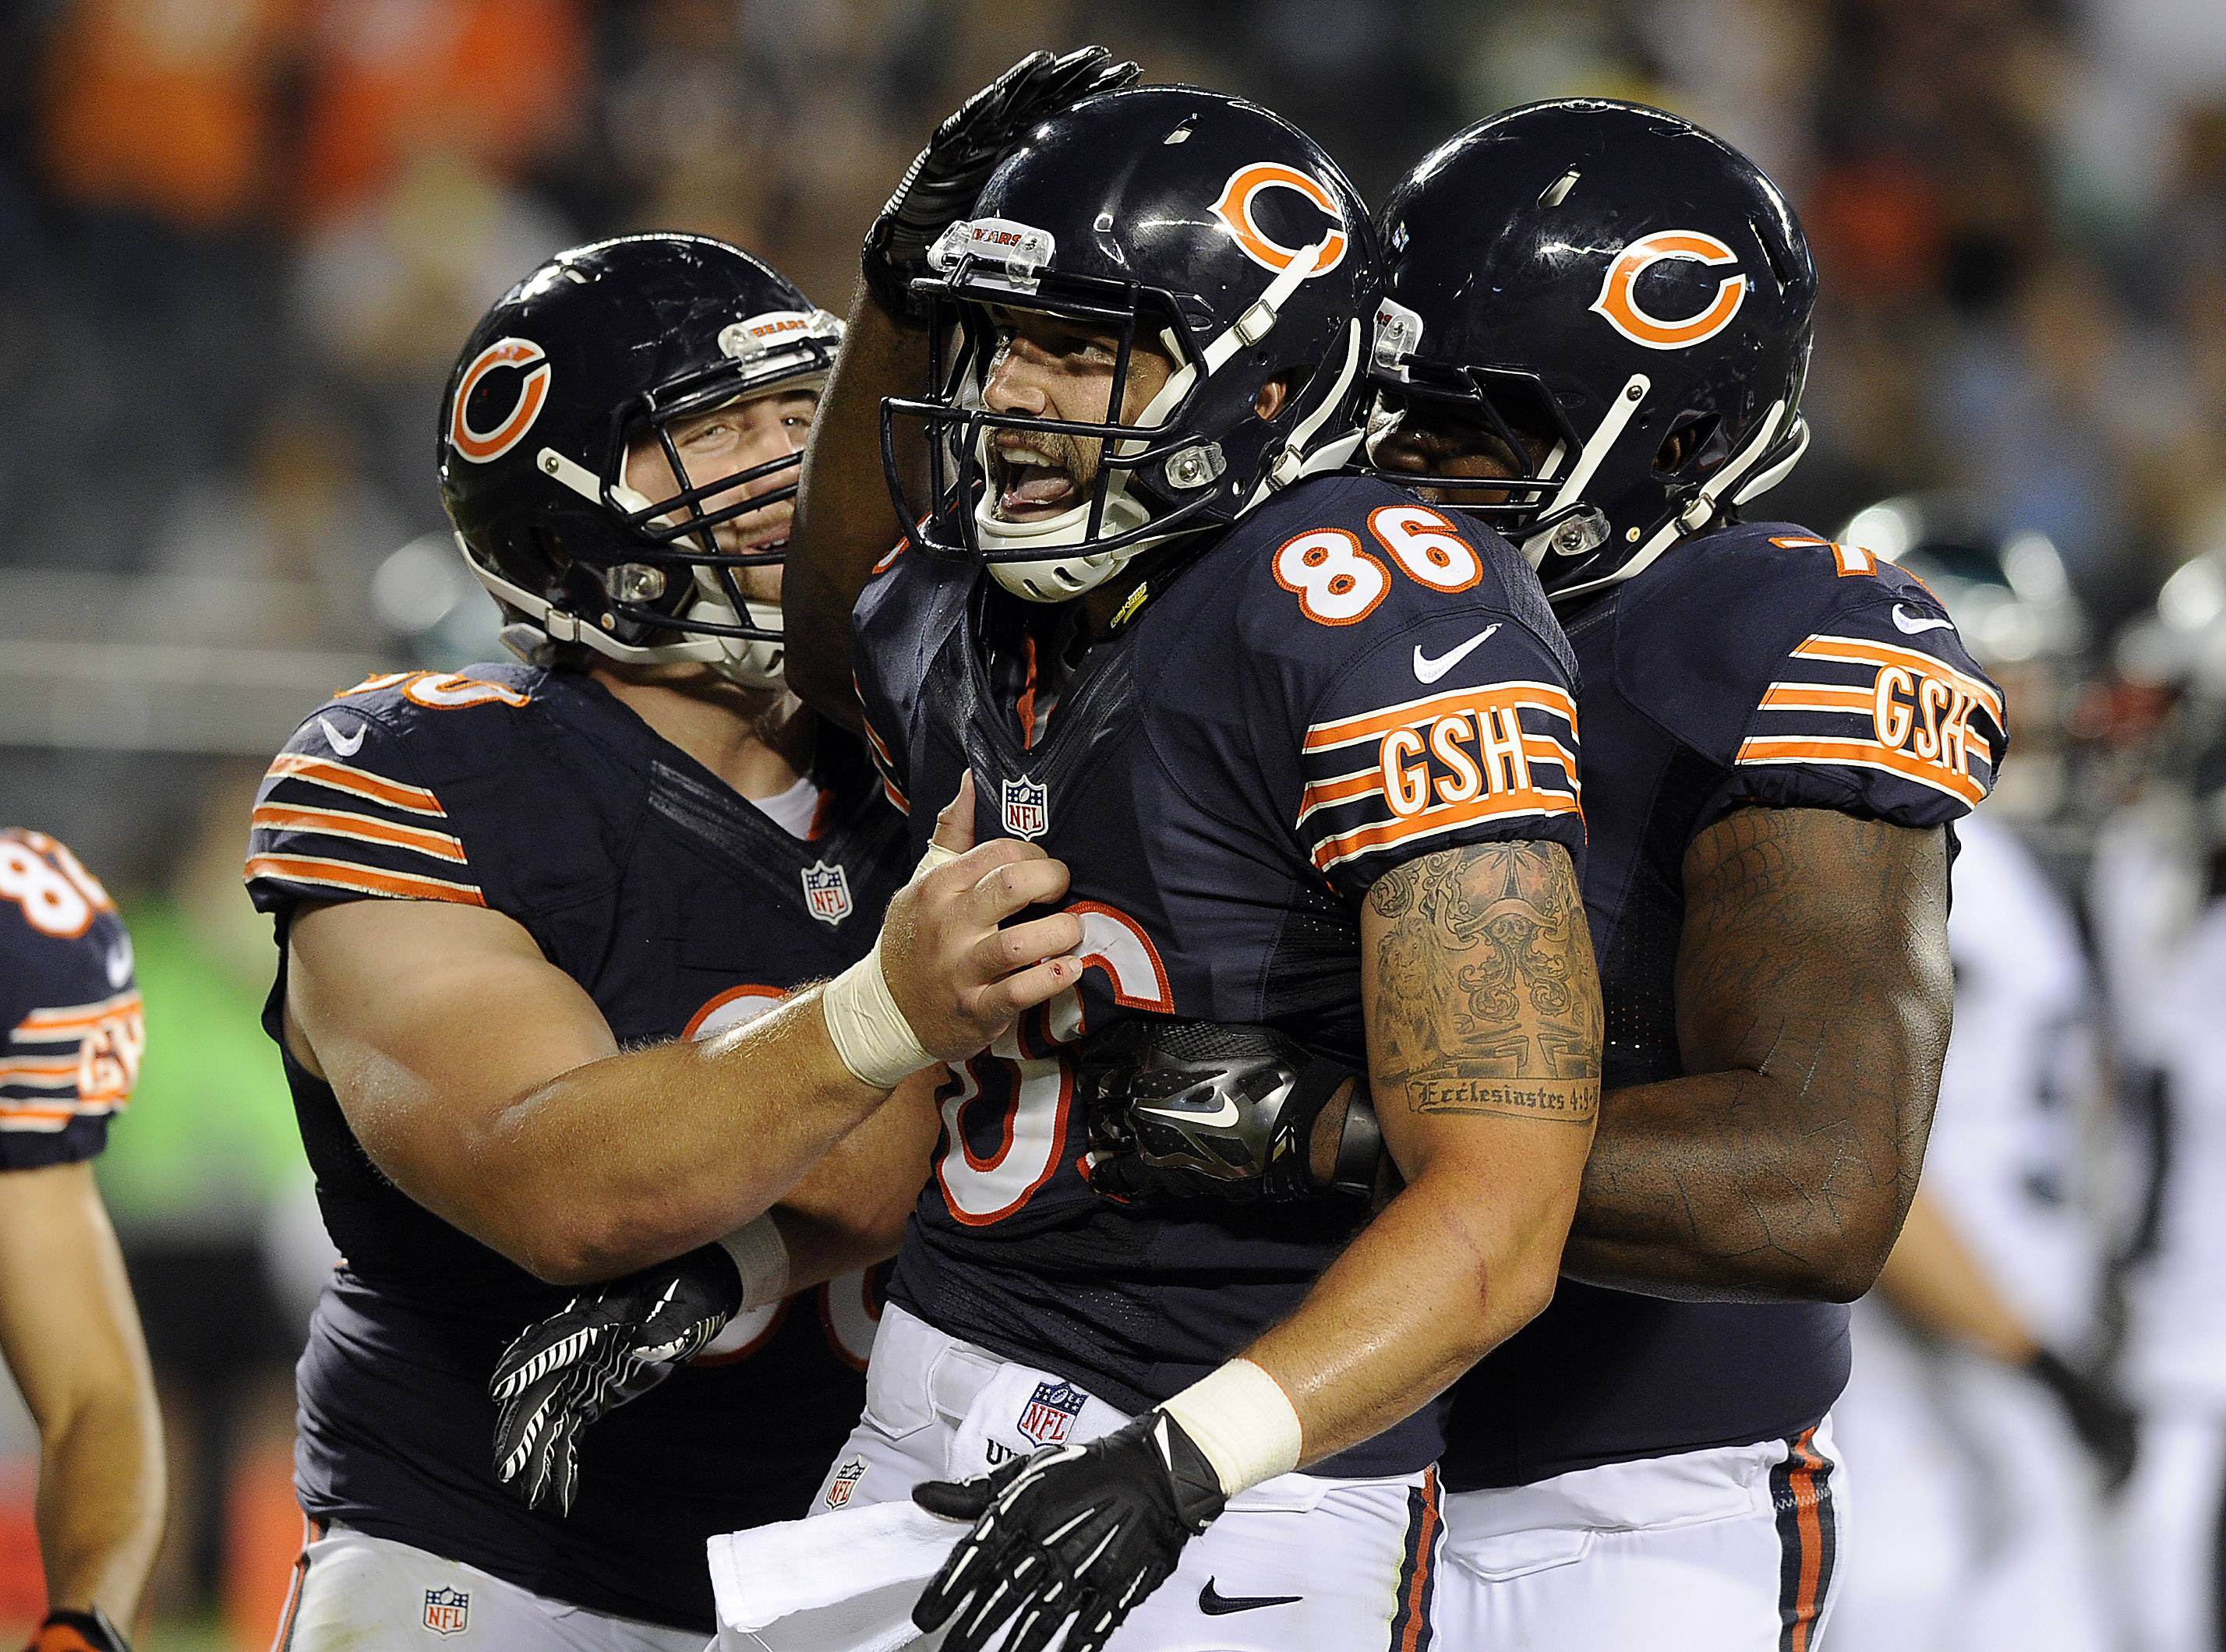 Mark Welsh/mwelsh@dailyherald.comChicago Bears Zach Miller hauls in Jordan Palmer's touchdown pass in the second quarter tying-up the game 14-all against Philadelphia at Soldier Field in Chicago. Here he celebrates with his teammates.